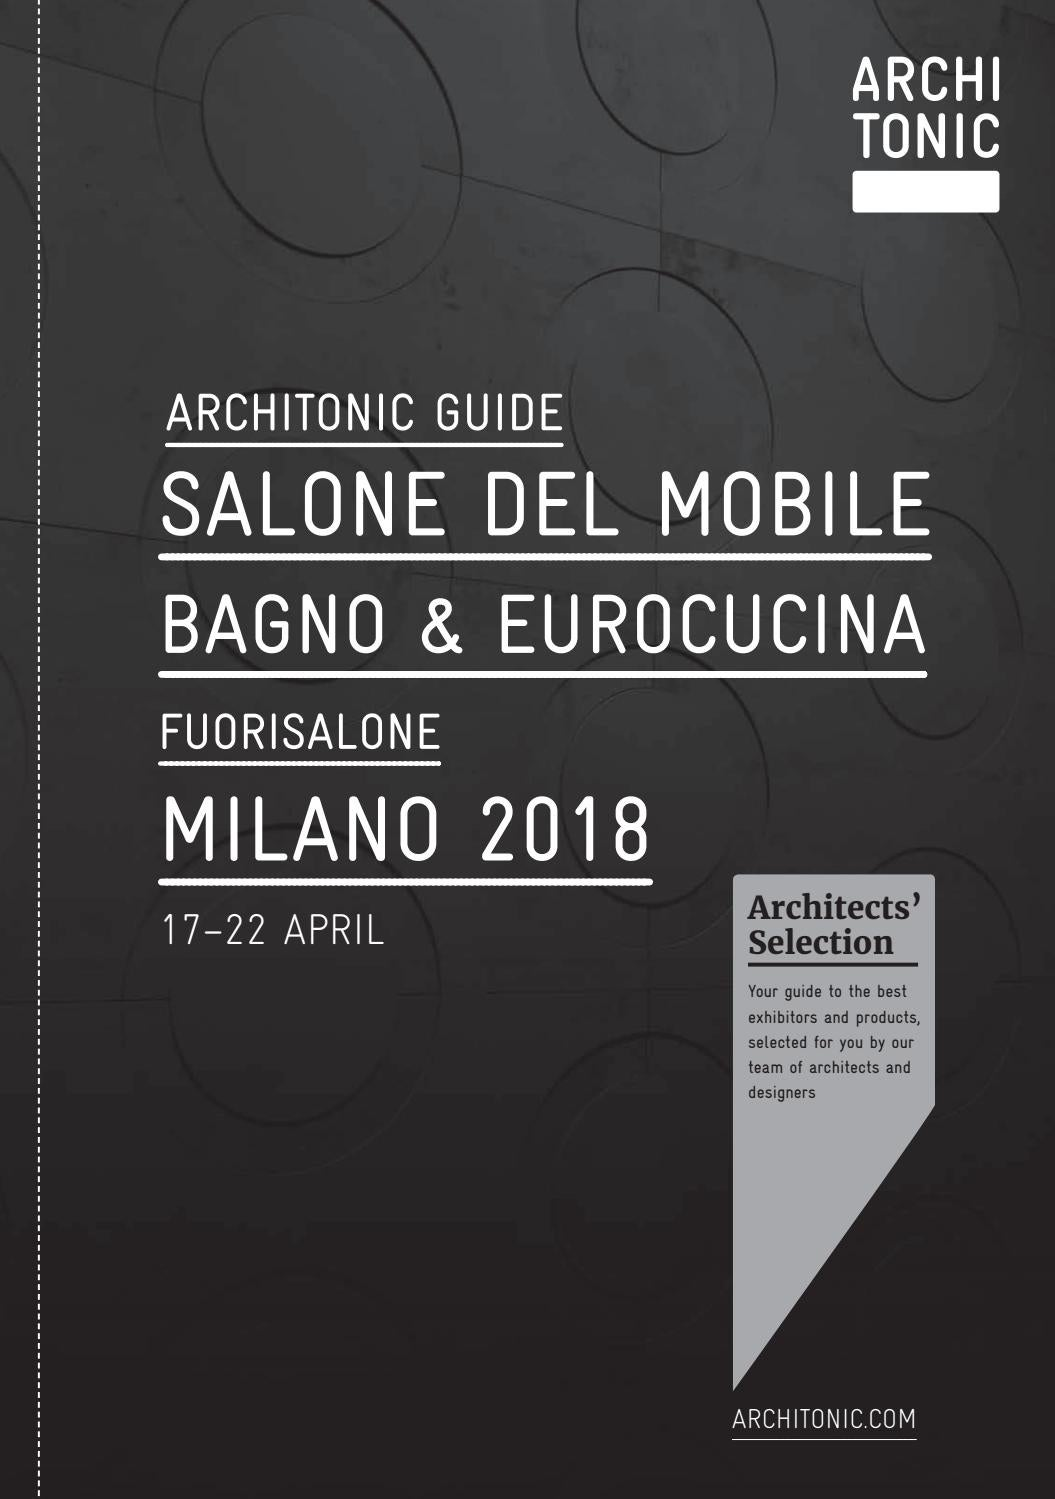 Möbel As Sha Architonic Guide Salone Del Mobile Milano 2018 By Gärtner Internationale Möbel - Issuu